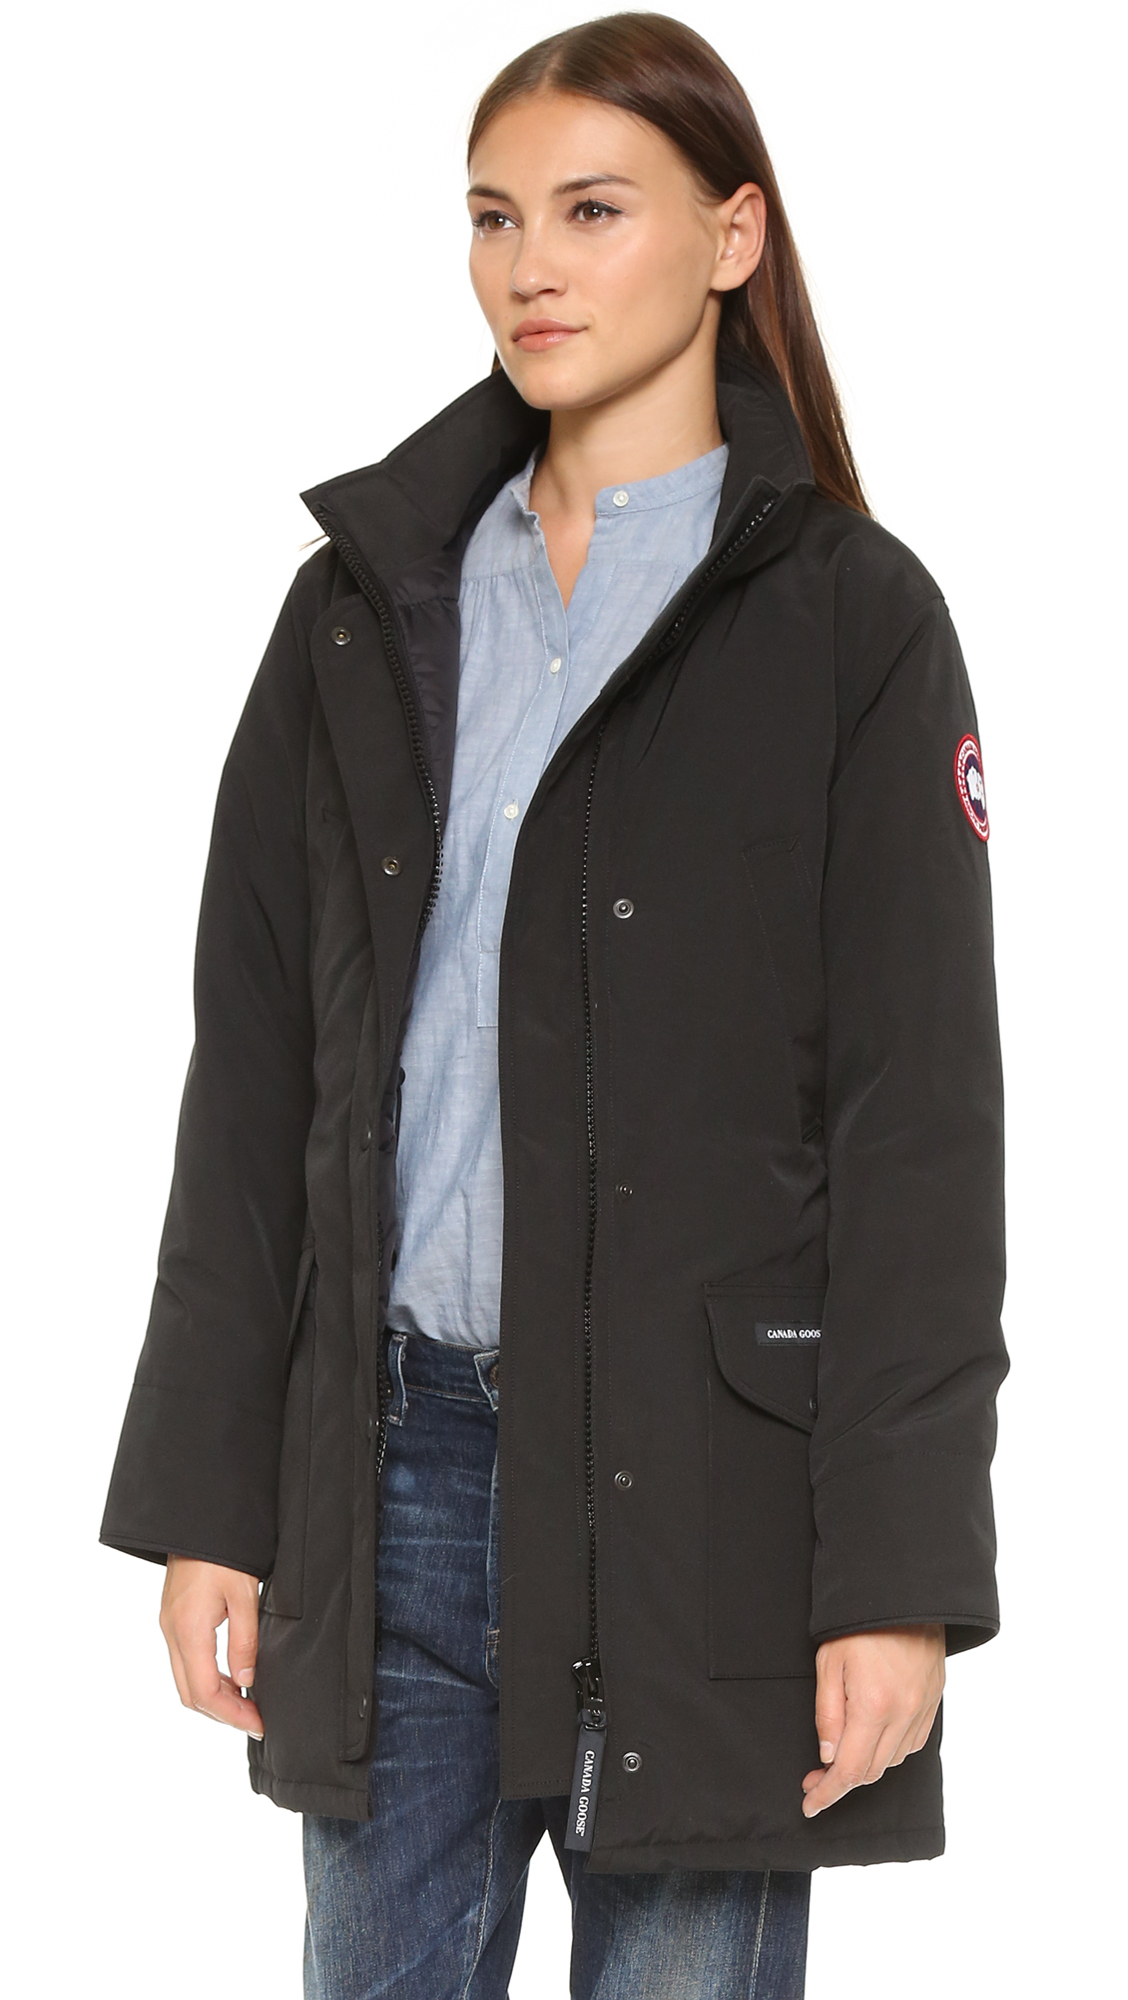 Canada Goose kensington parka sale cheap - Canada goose Trillium Parka - Military Green in Green (Black) | Lyst